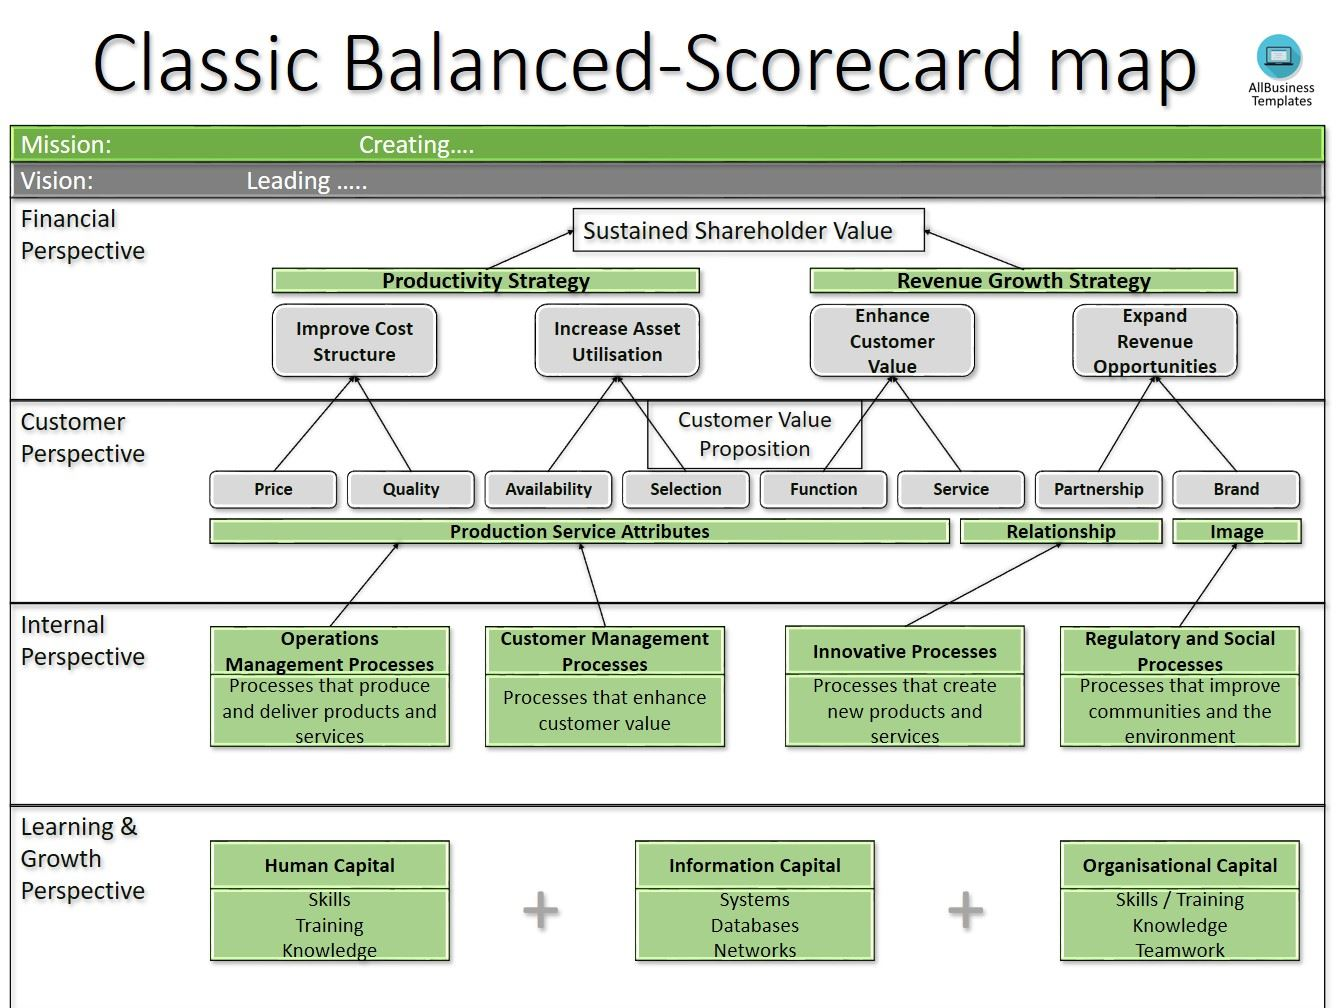 Business balanced scorecard template templates at business balanced scorecard template main image pronofoot35fo Images